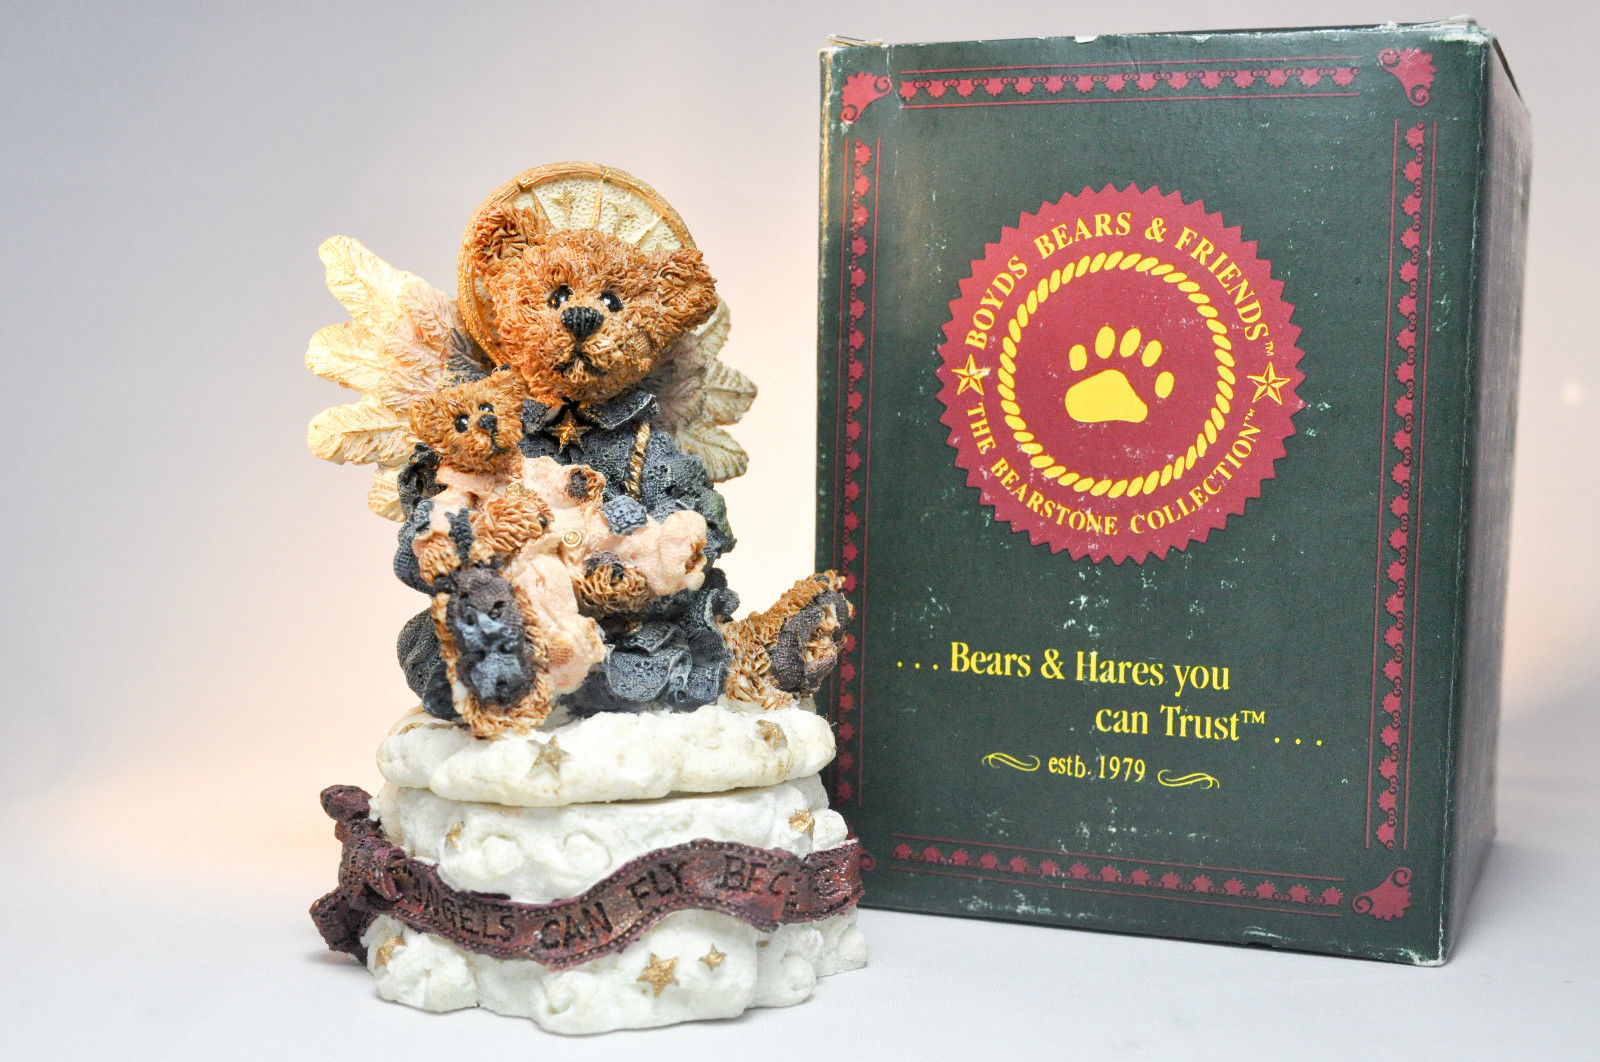 Boyds Bears: Angelica The Guardian - Style 2266 - First Edition 1E/230 - Trinket image 11